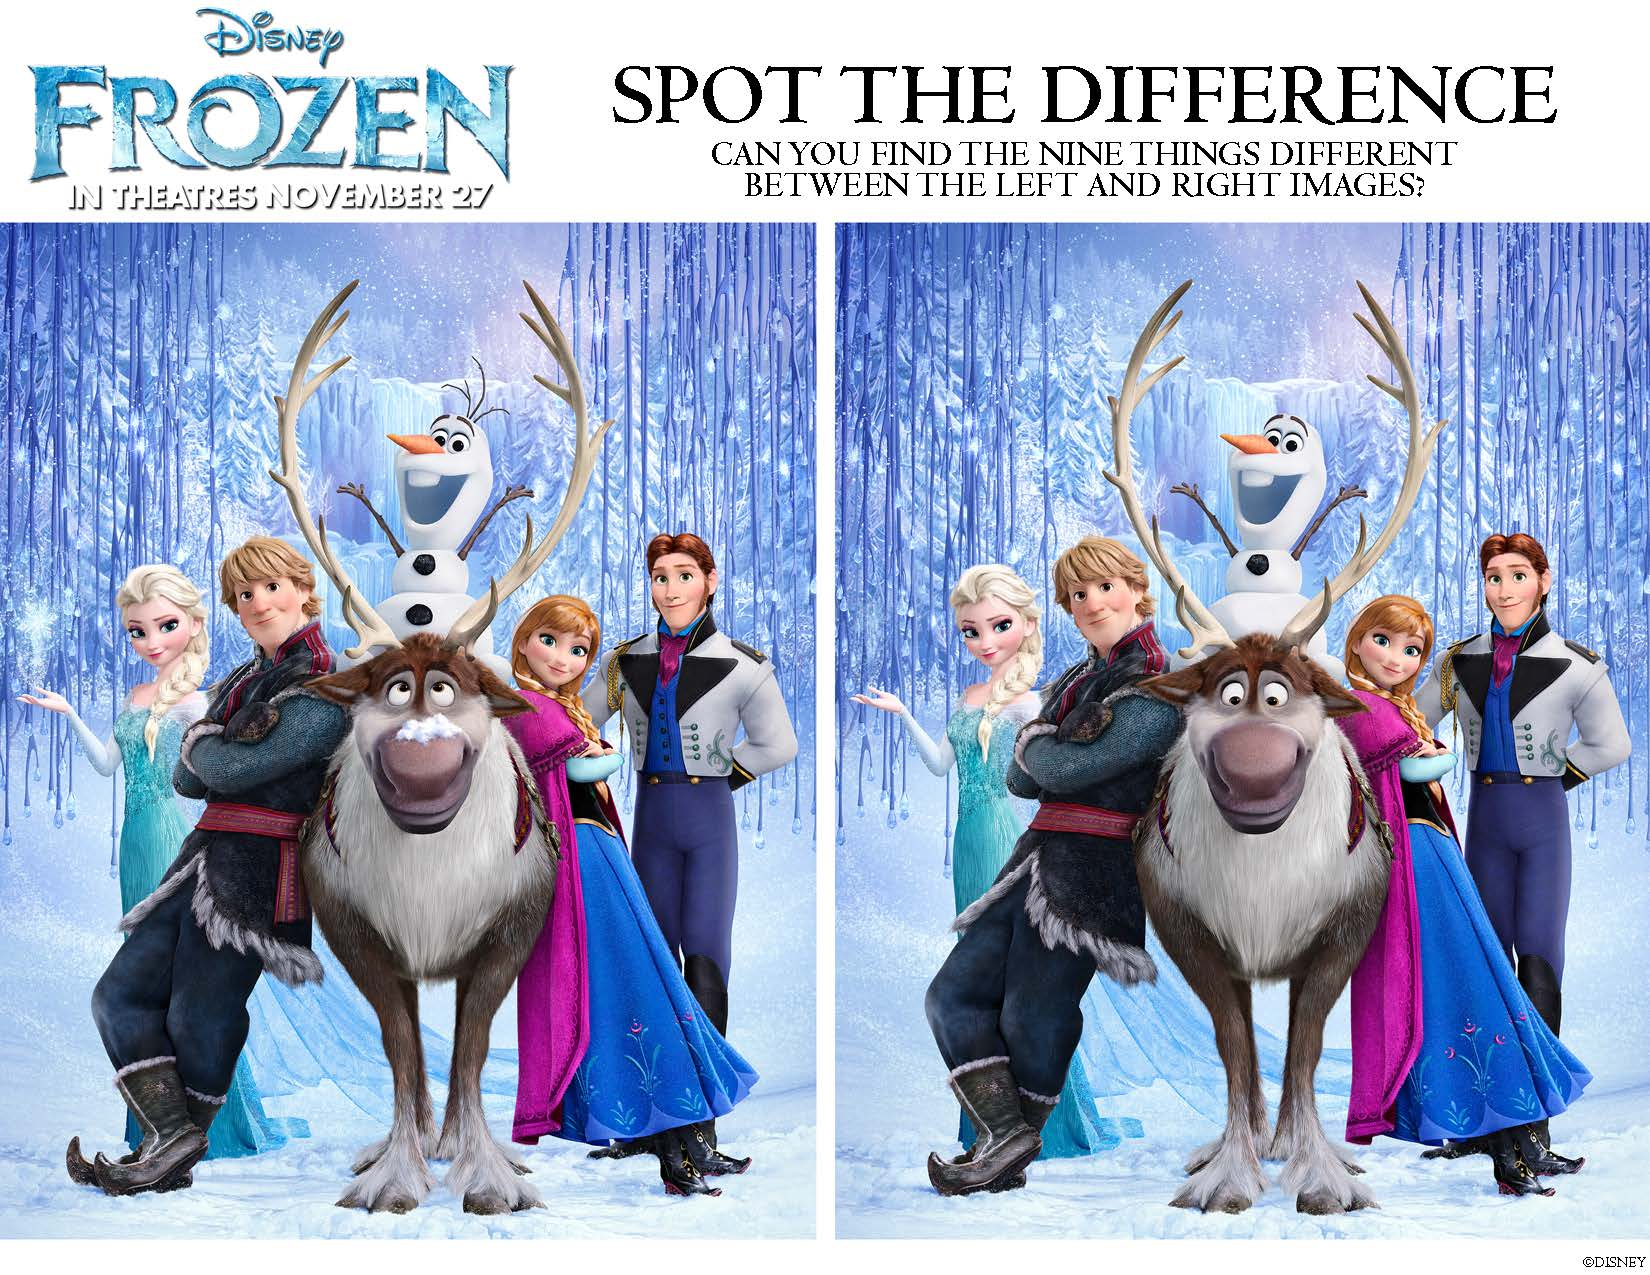 Disneys FROZEN Movie Printable Coloring Pages And Activity Sheets For Kids